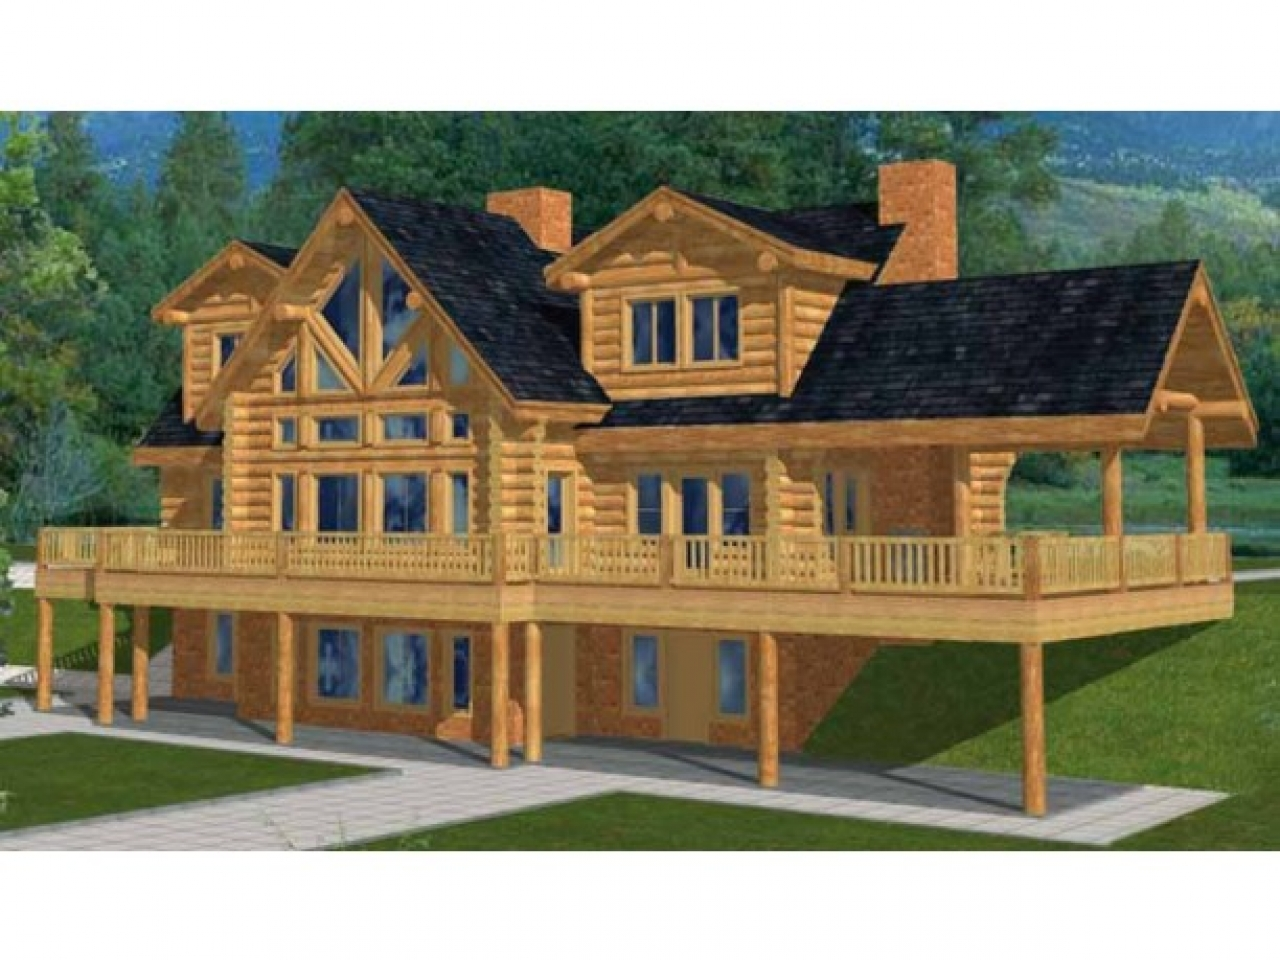 Two story log cabin house plans inexpensive modular homes for Log house plans free